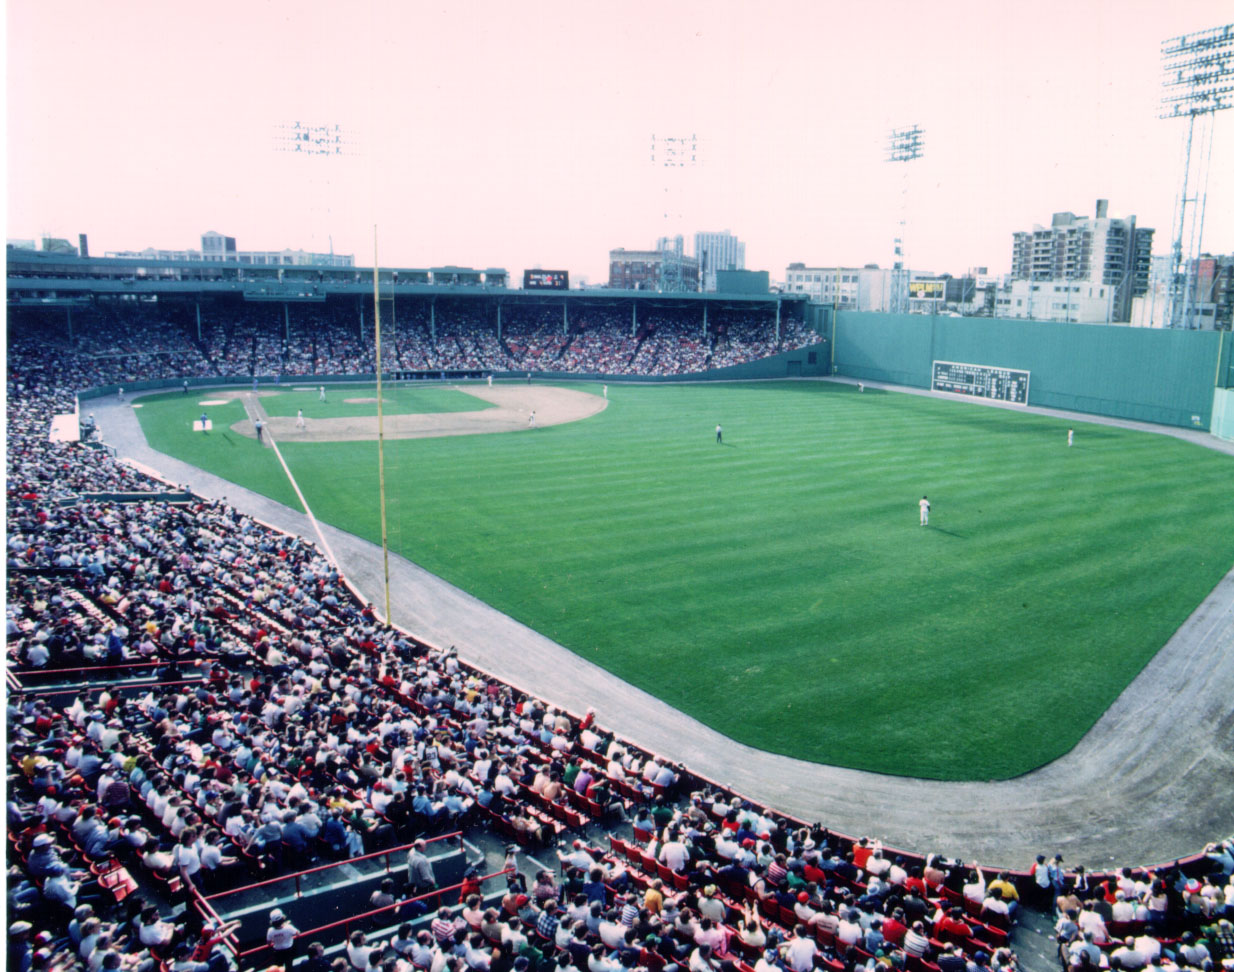 fenway park and parks - photo #42